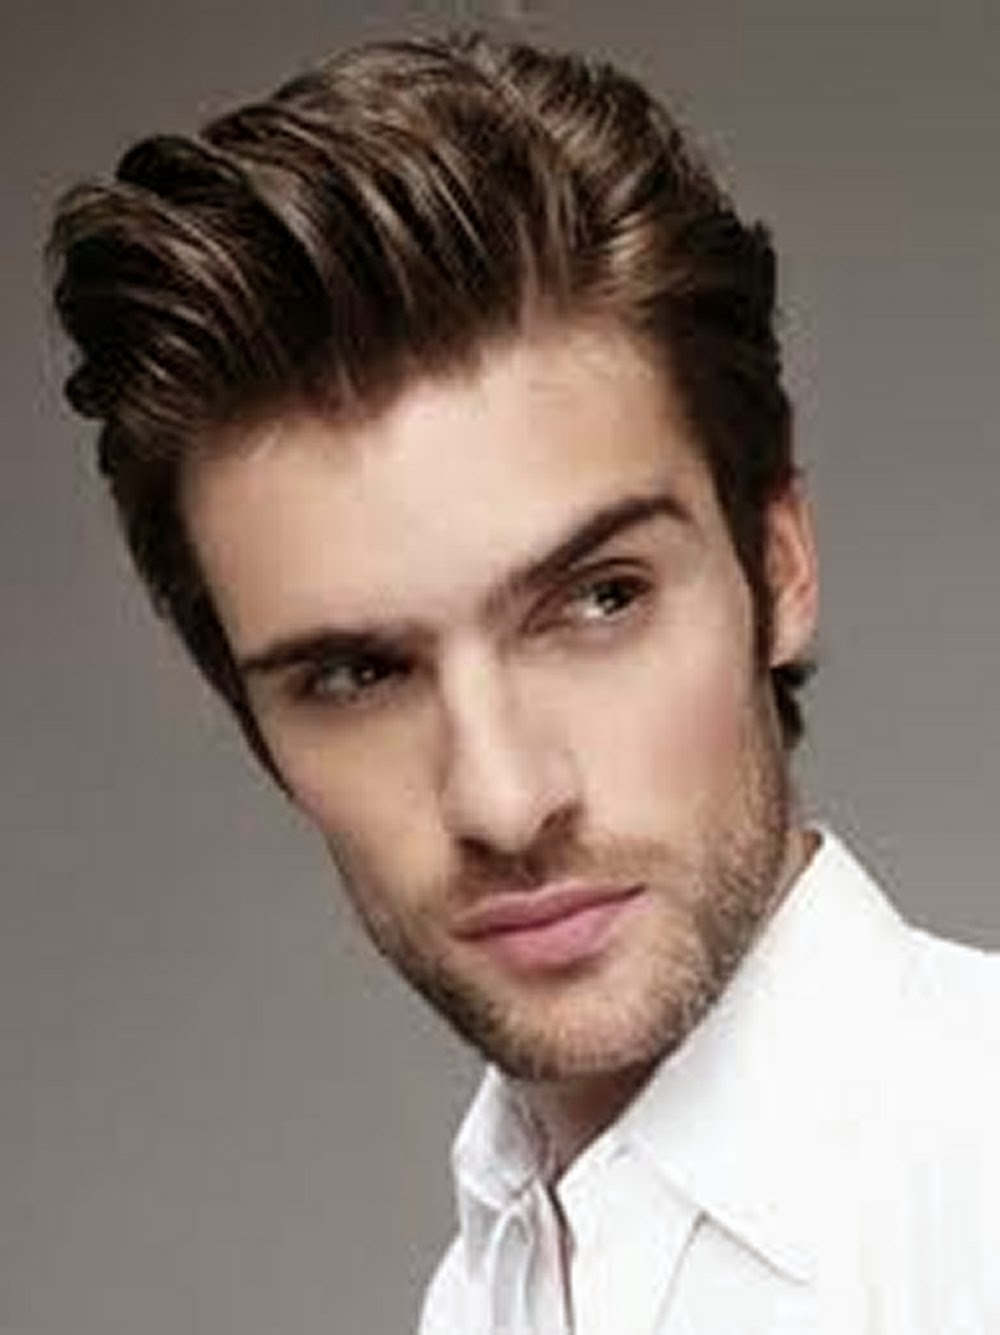 ... hairstyle that is widely used in men in 2013 image for trendy haircuts